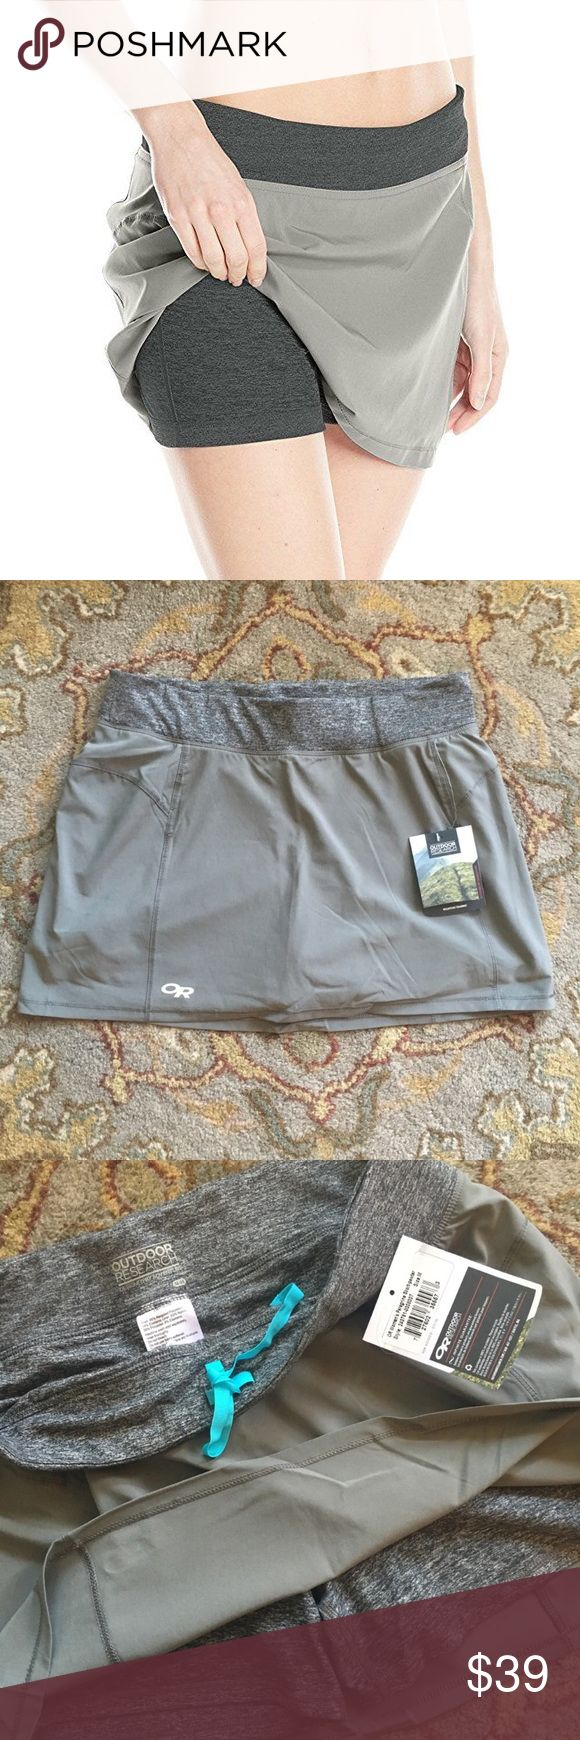 *NWT* Outdoor Research Women's Peregrine Skort, M This Outdoor Research Skort pulls no punches when upping the speed on the single-track. Built with a comfortable, supportive stretch inner short and a breathable stretch outer, the Peregrine brings a touch of feminine mystique to your latest trail race. A small zippered center-back waistband pocket securely holds keys and ID cards, and a small stealth stash pocket provides room for gel packets and energy blocks. Color is Pewter. Outdoor…